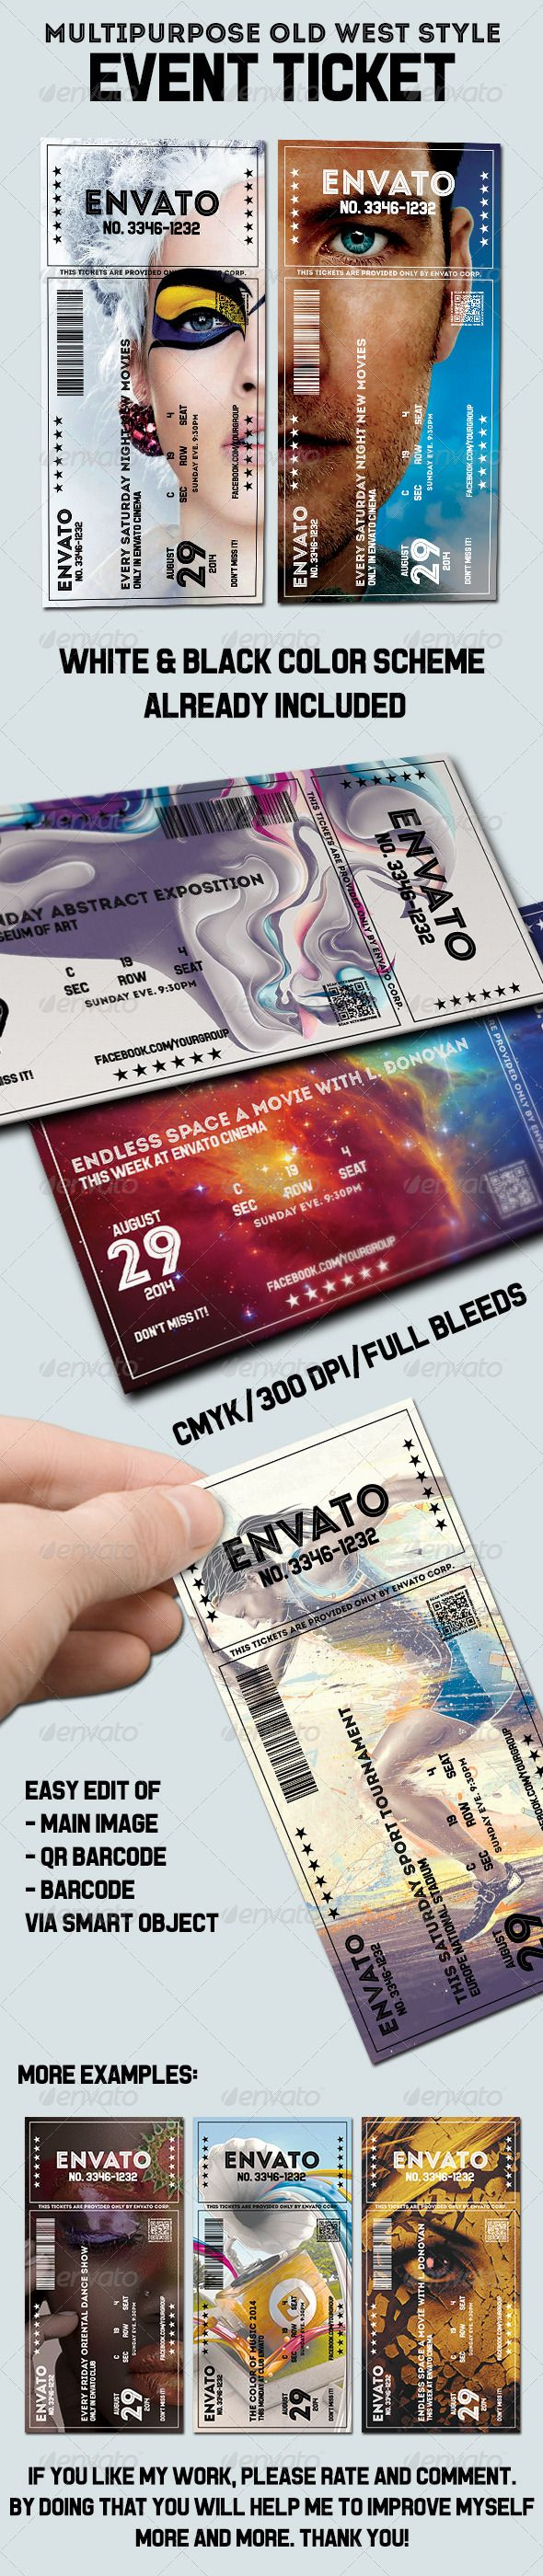 Concert Ticket Template Free Download Simple 19 Best Voucher Images On Pinterest  Gift Voucher Design Gift .